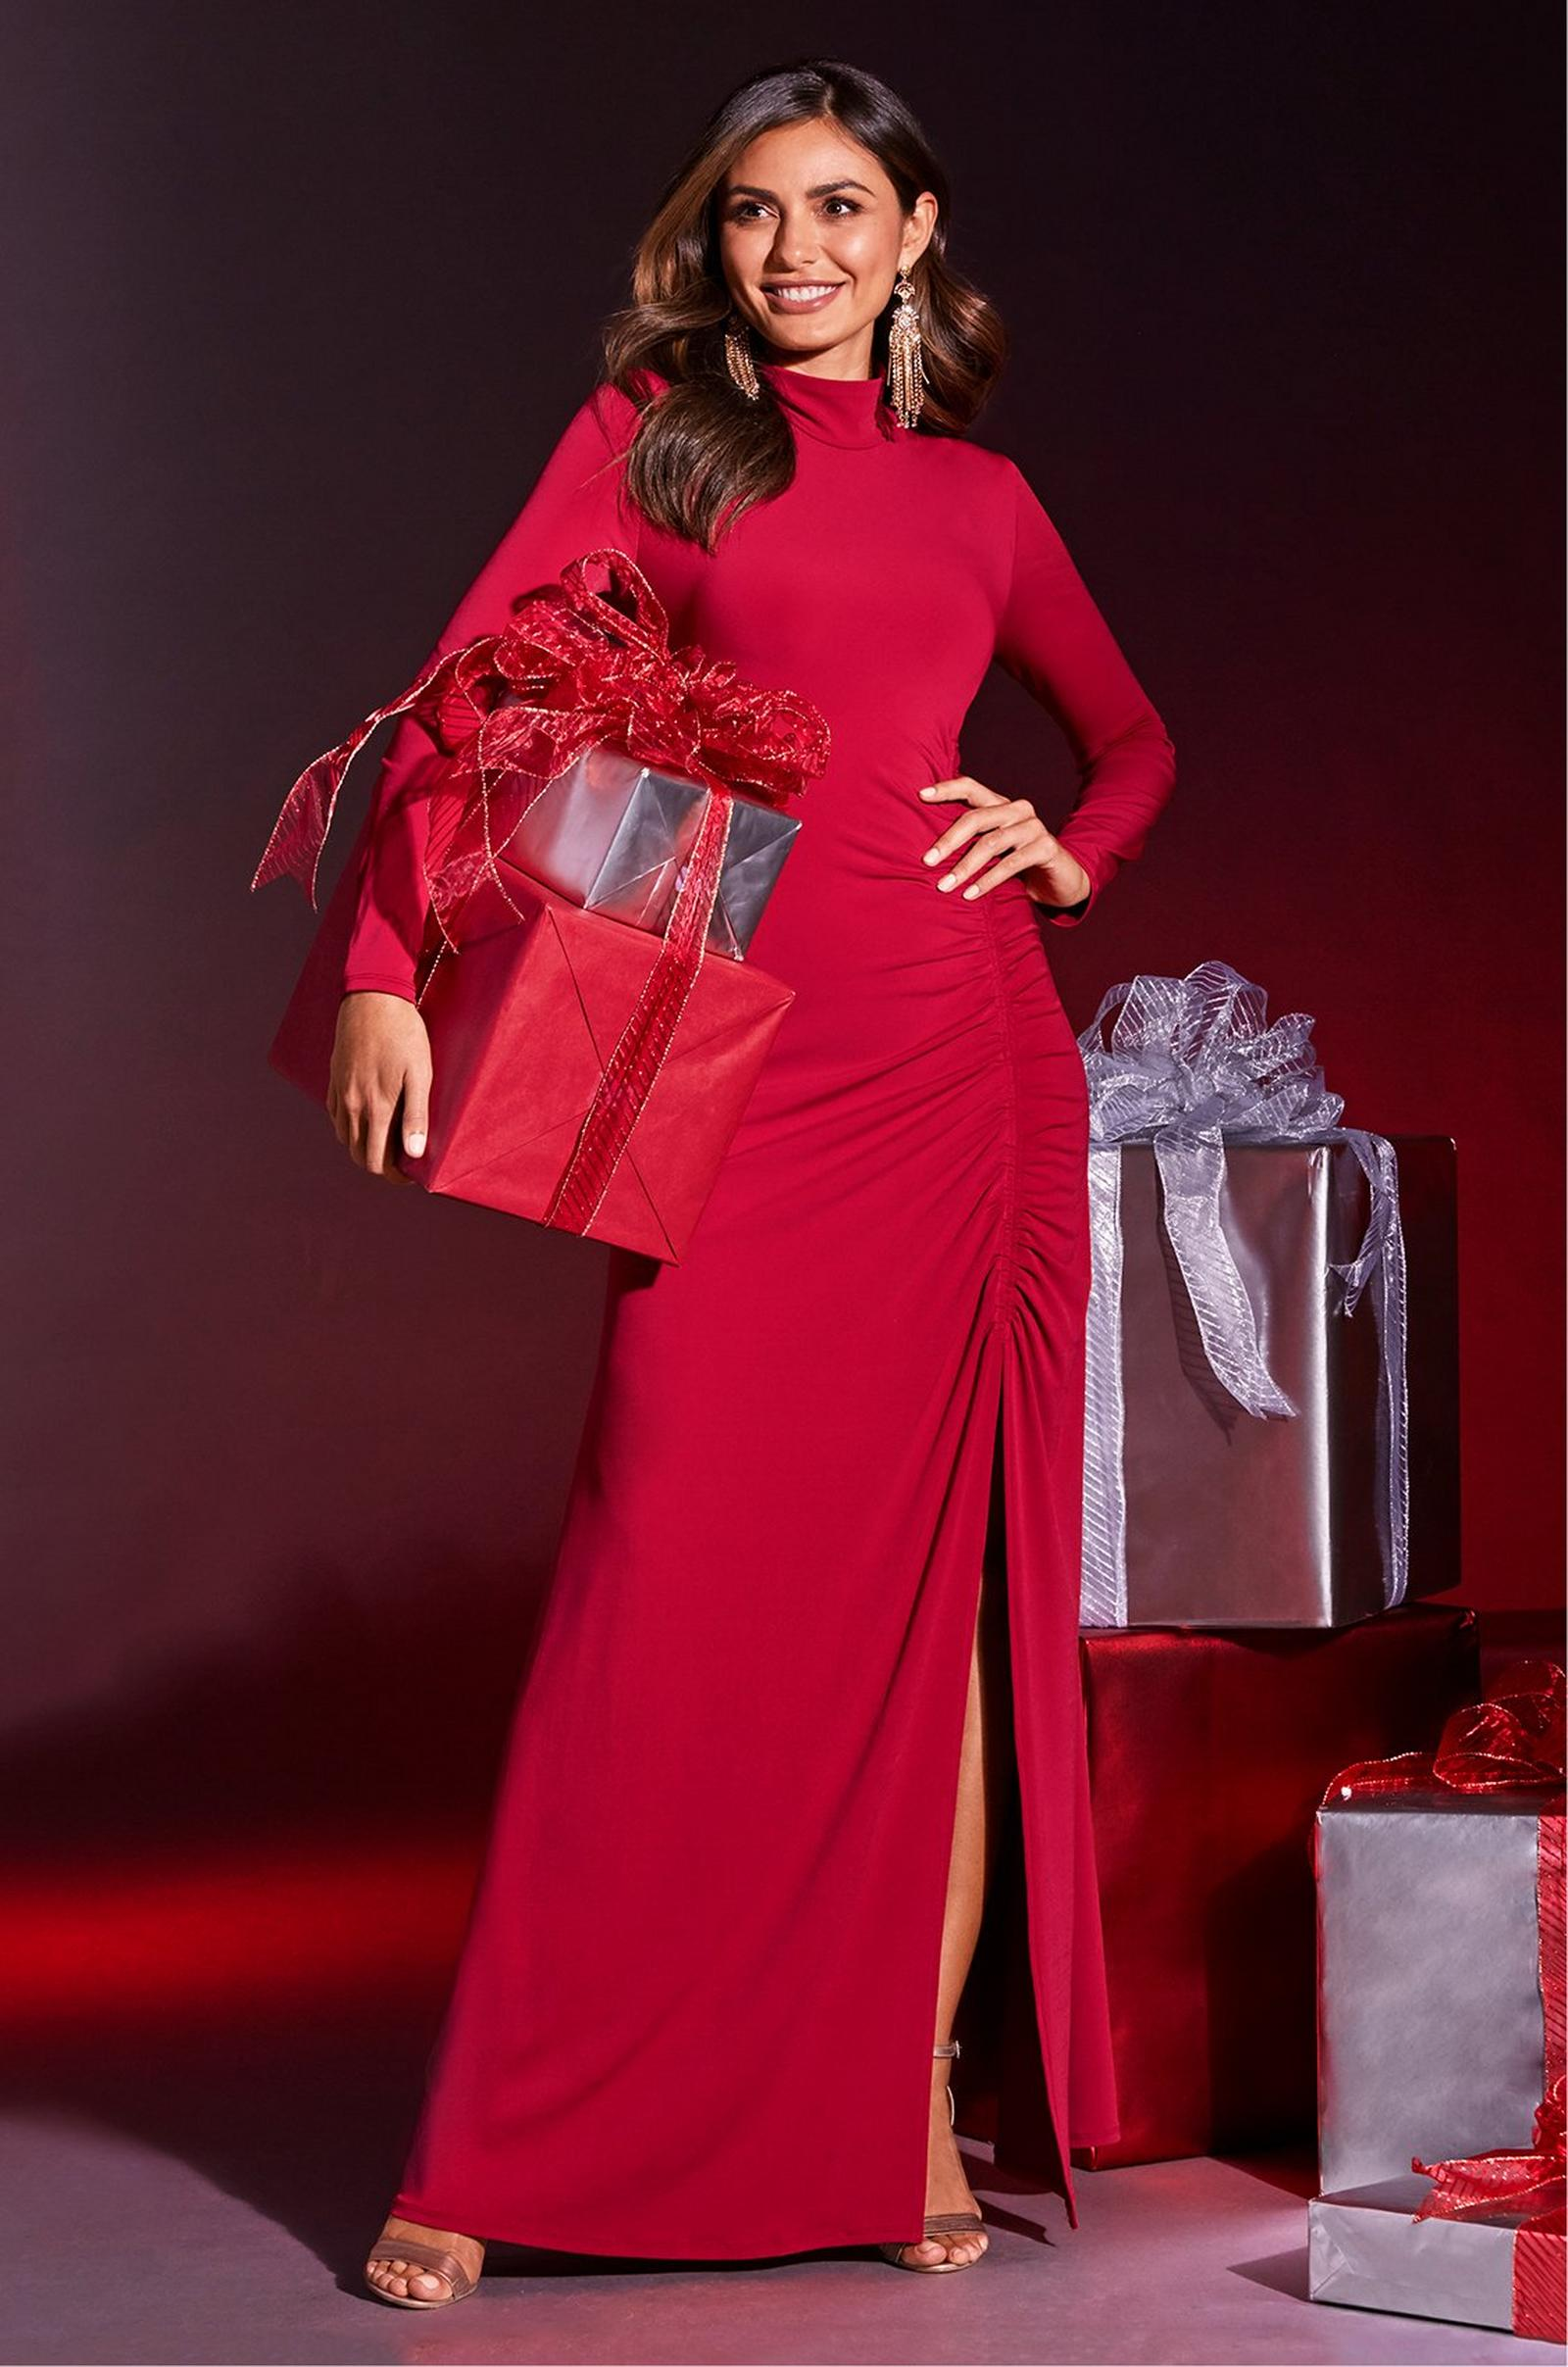 model wearing long sleeve mock neck gown in red while holding wrapped gifts.